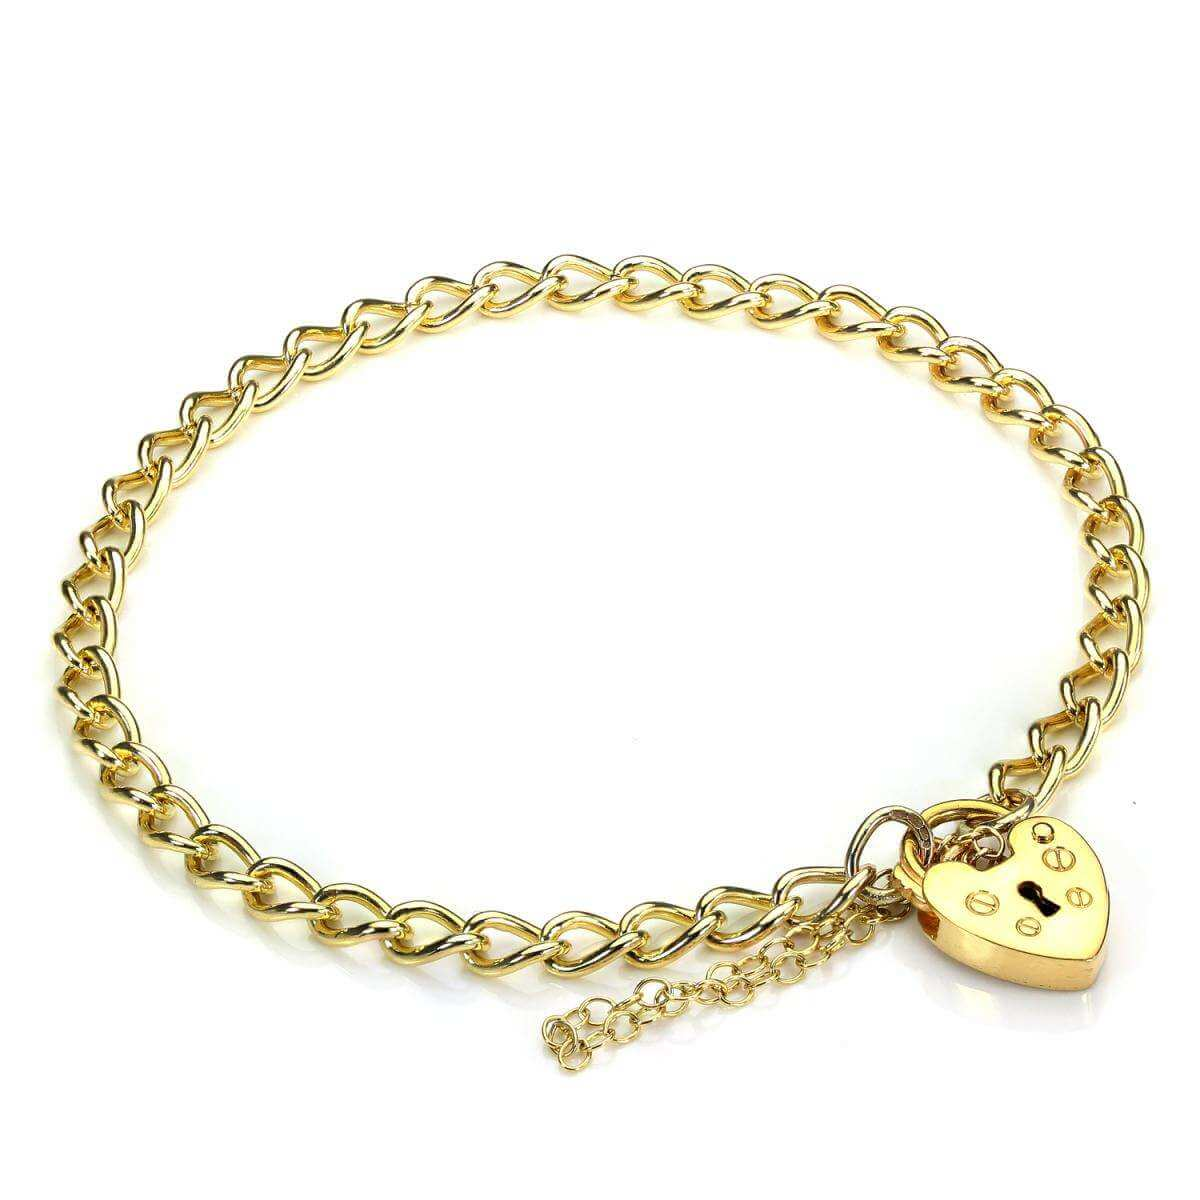 Childs Gold Heart Padlock Charm Bracelet